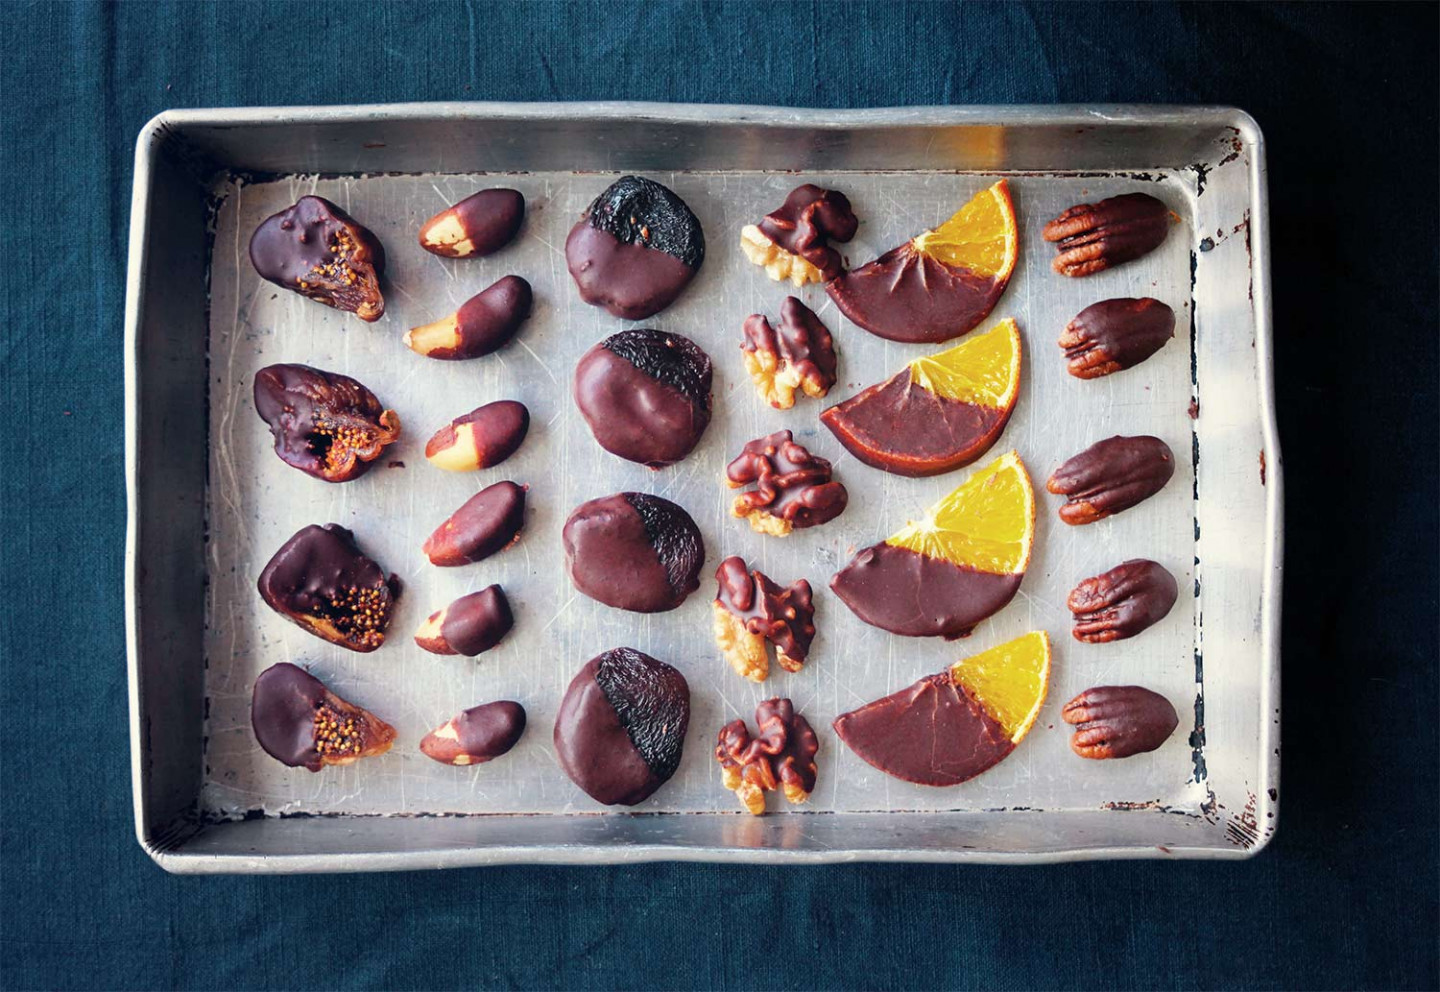 Chocolate Covered Fruit & Nuts